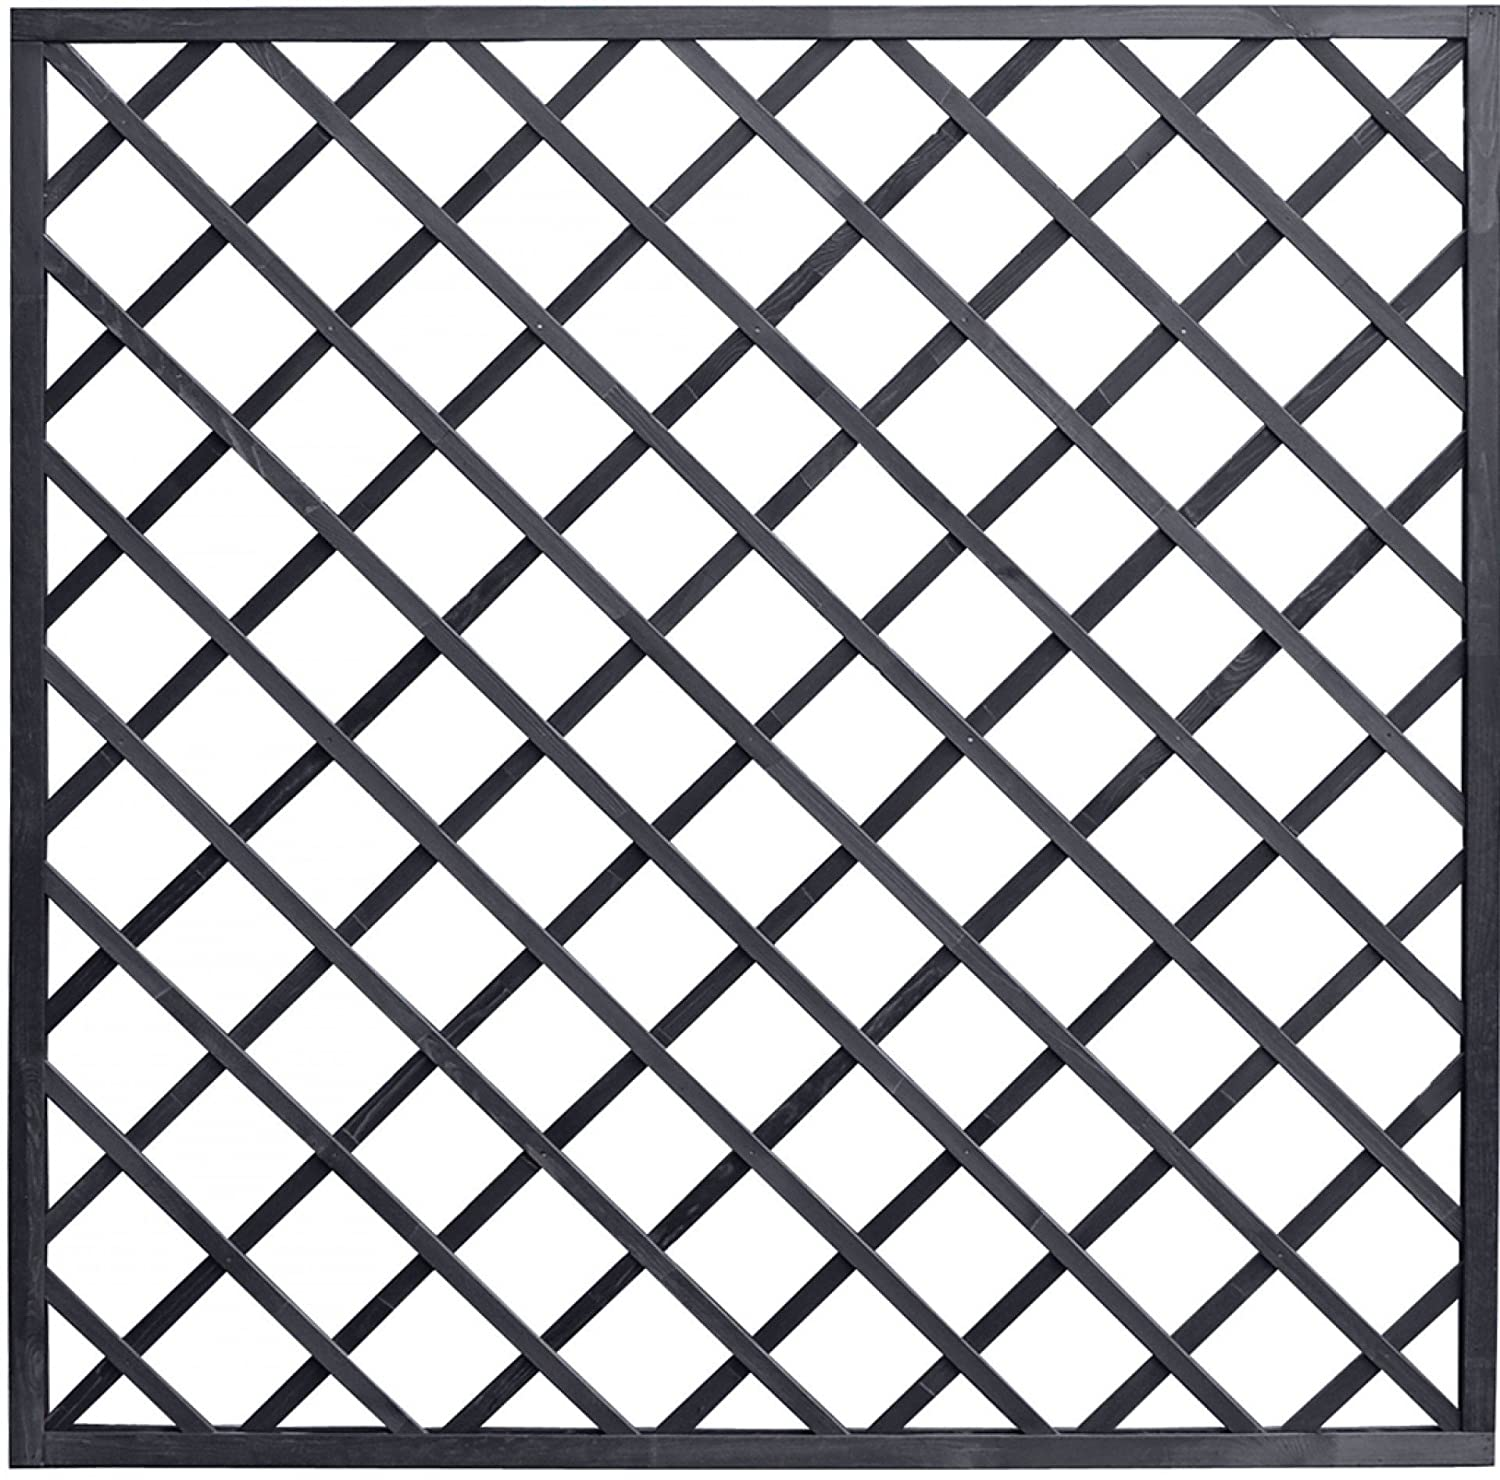 Andrewex wooden fence, fencing panel, garden fence 180 x 180, varnished, anthracite